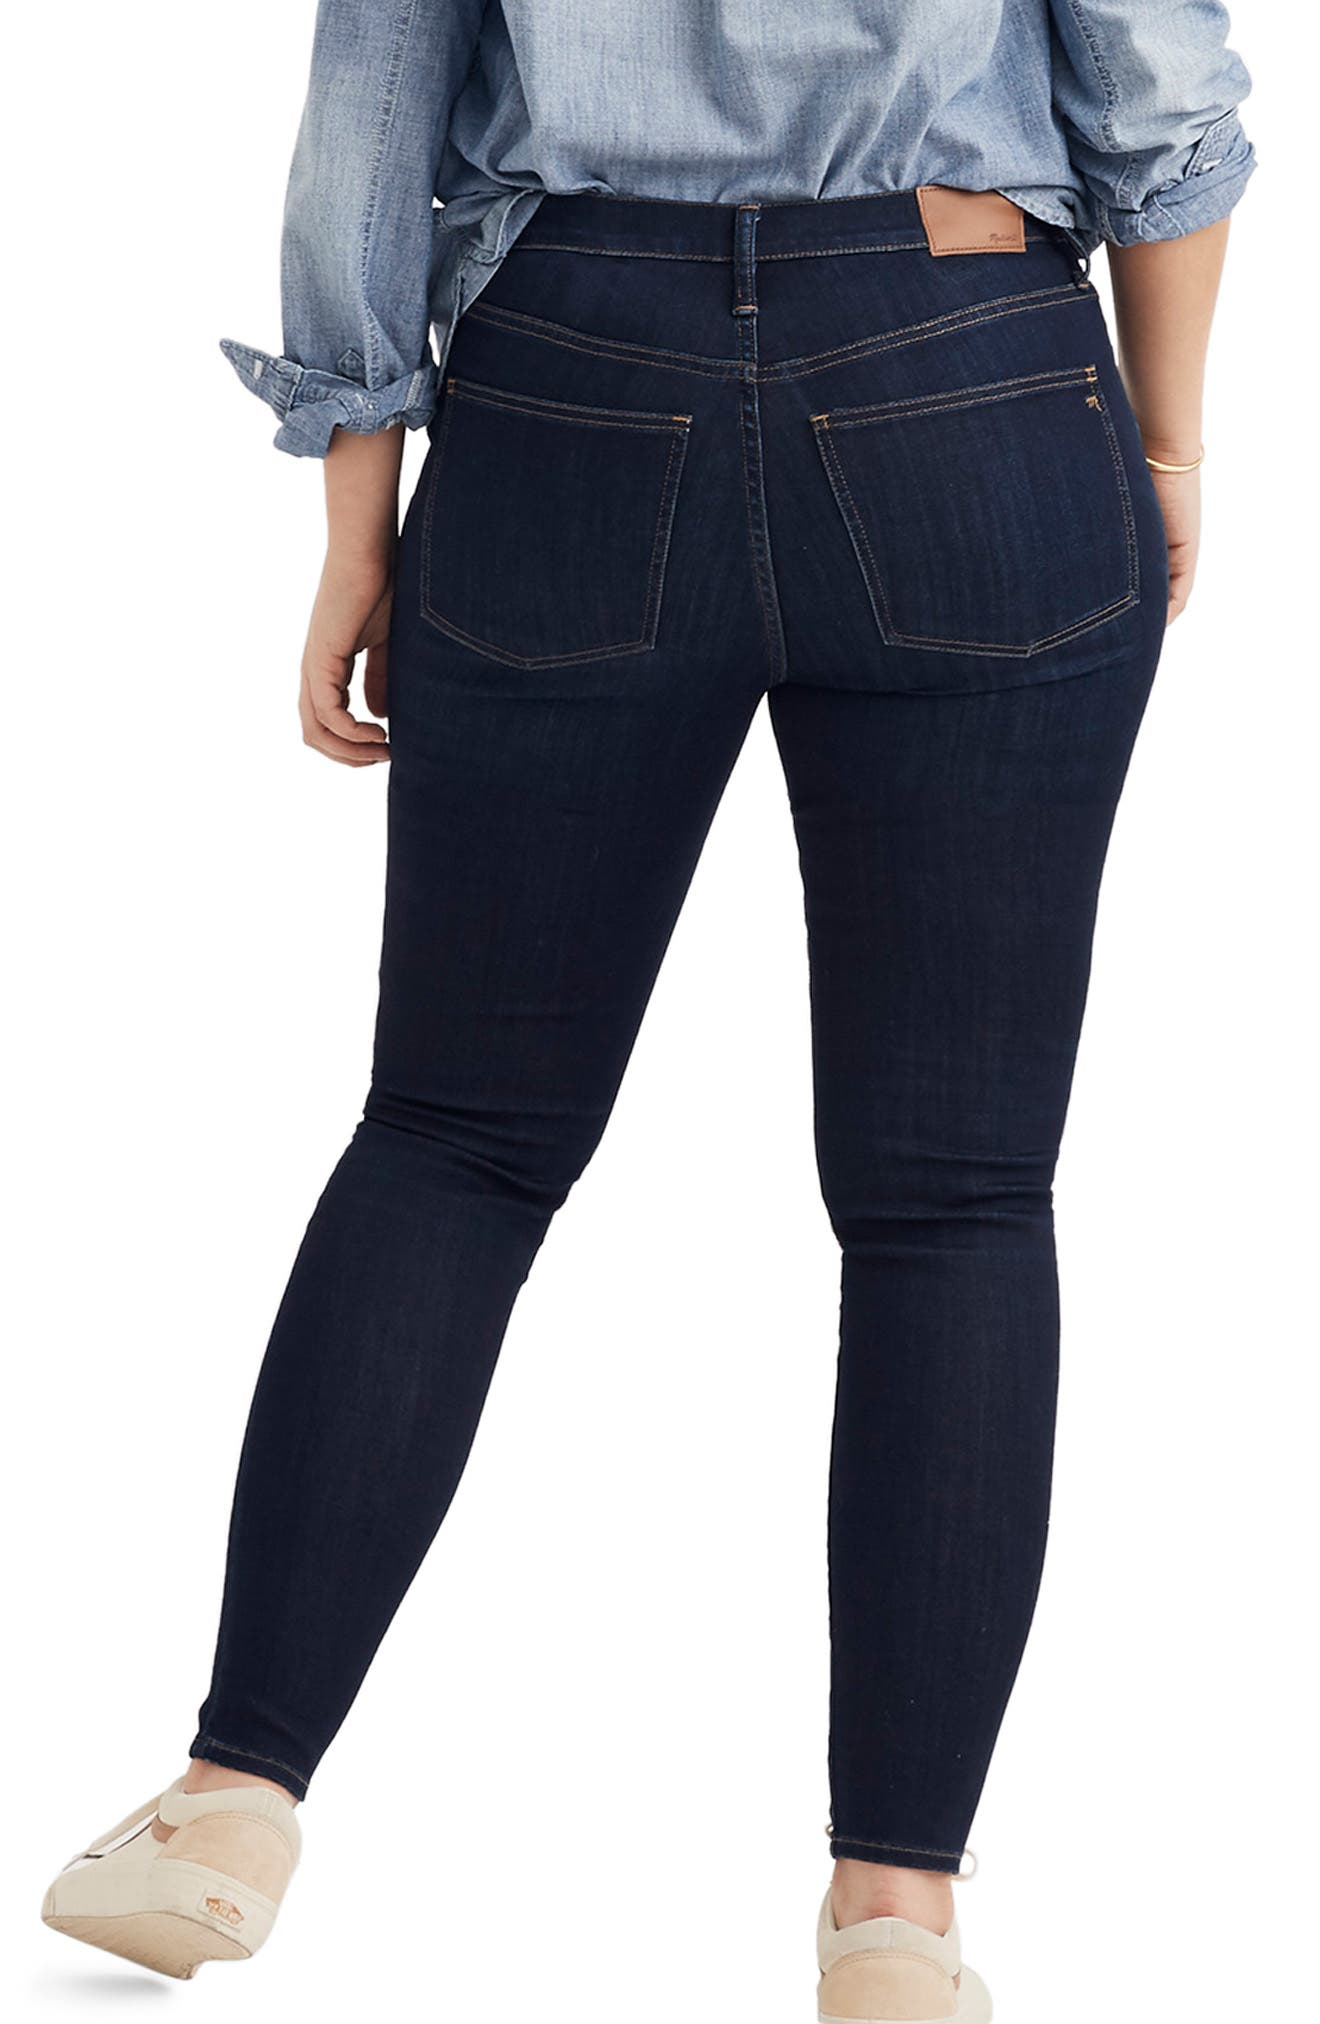 MADEWELL, 9-Inch High Rise Skinny Jeans, Alternate thumbnail 9, color, LARKSPUR